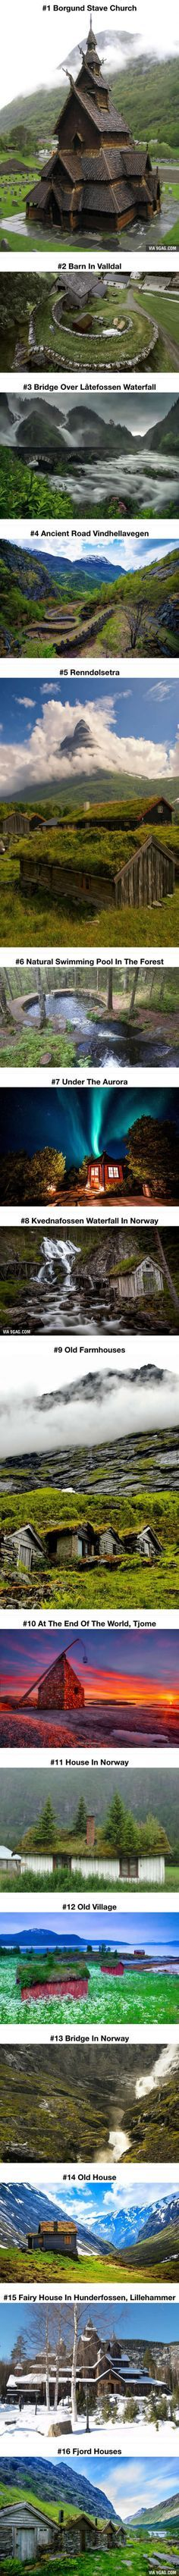 Beautiful Fairy Tale Architecture From Norway